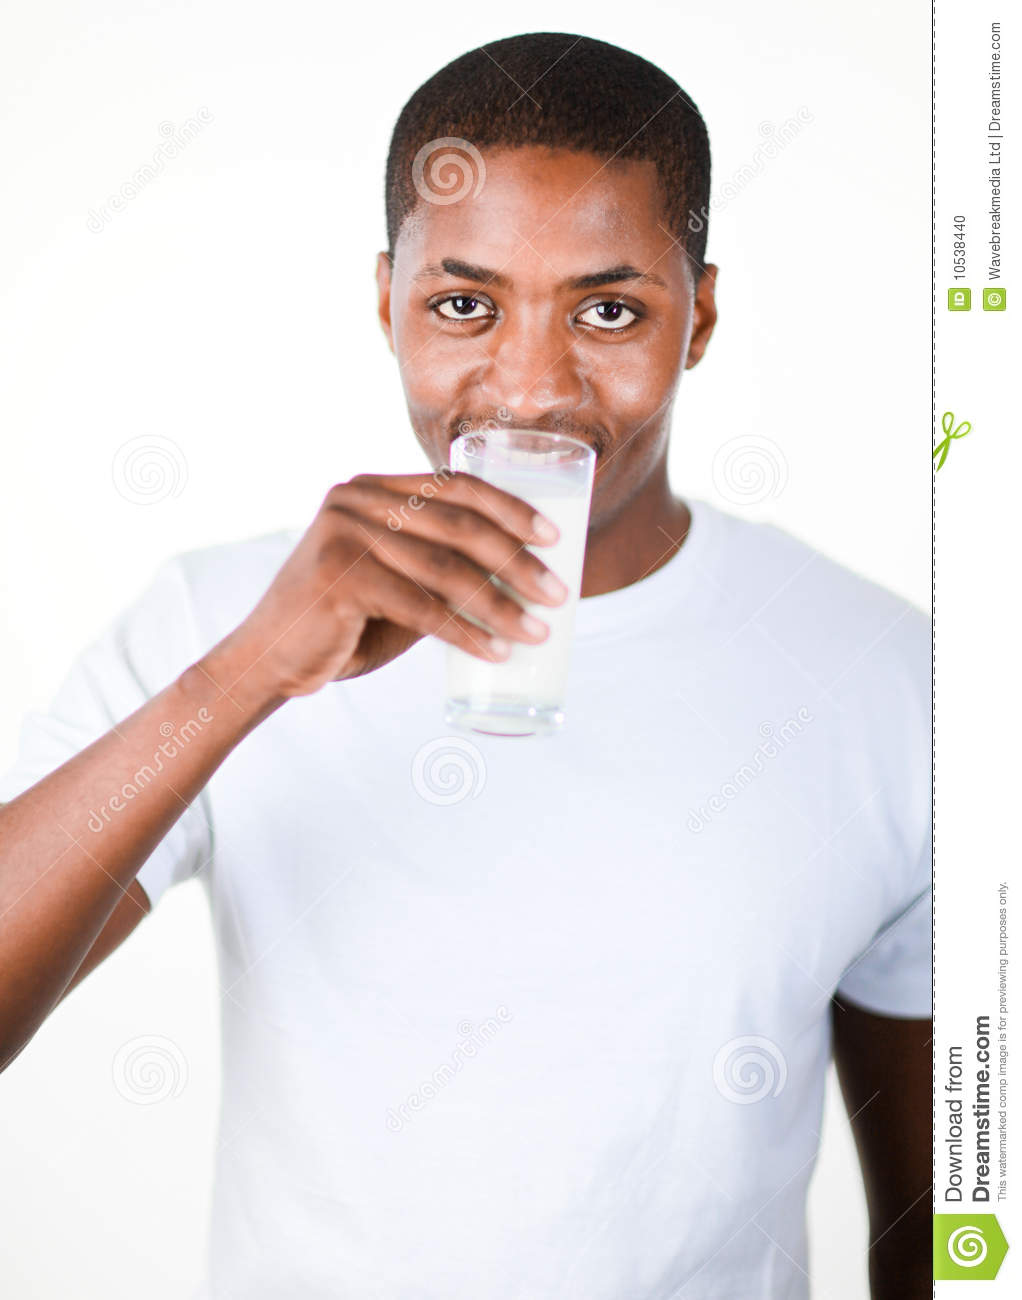 4226047f0efe Man Drinking A Glass Of Milk Stock Photo - Image of drink, beverage ...